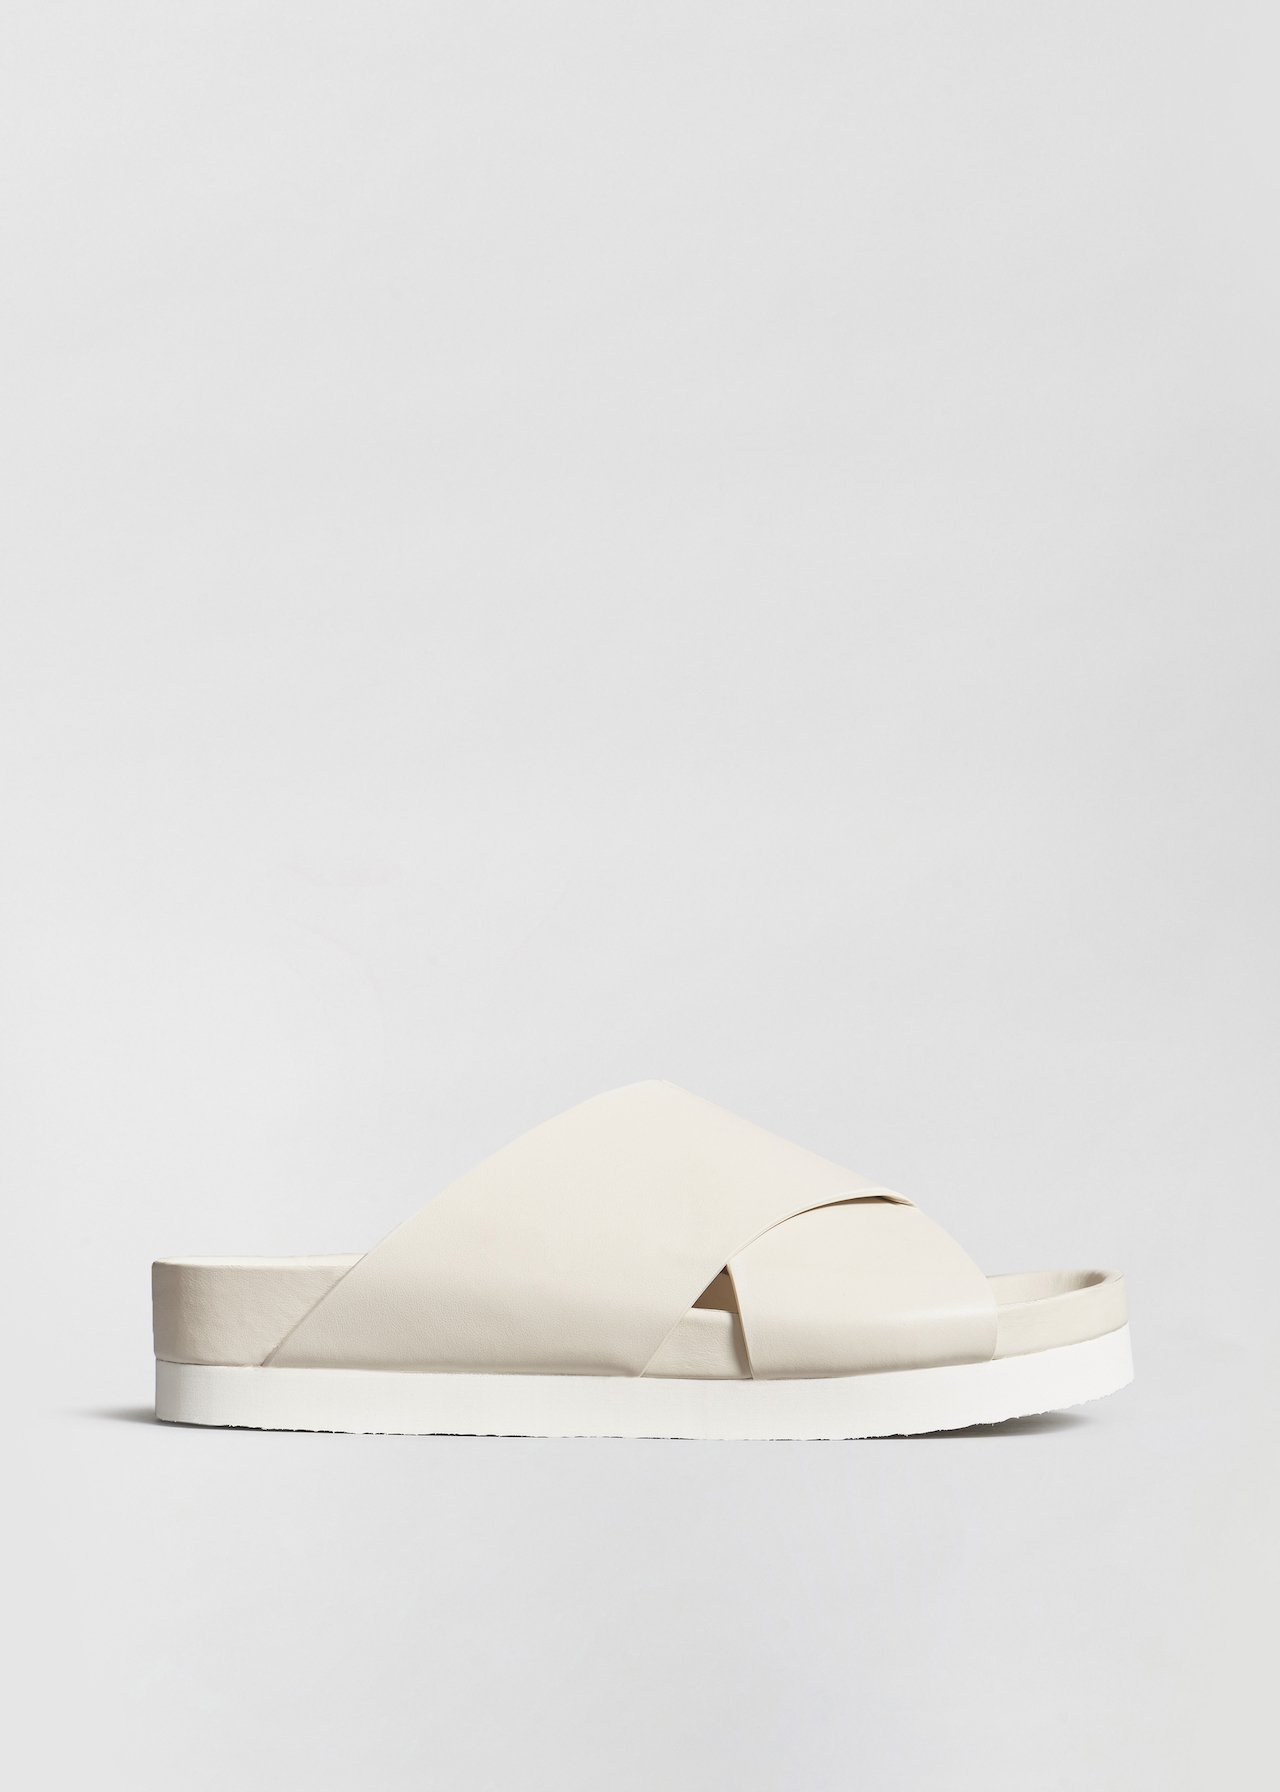 Slide Sandal in Smooth Leather - Ivory - Co Collections